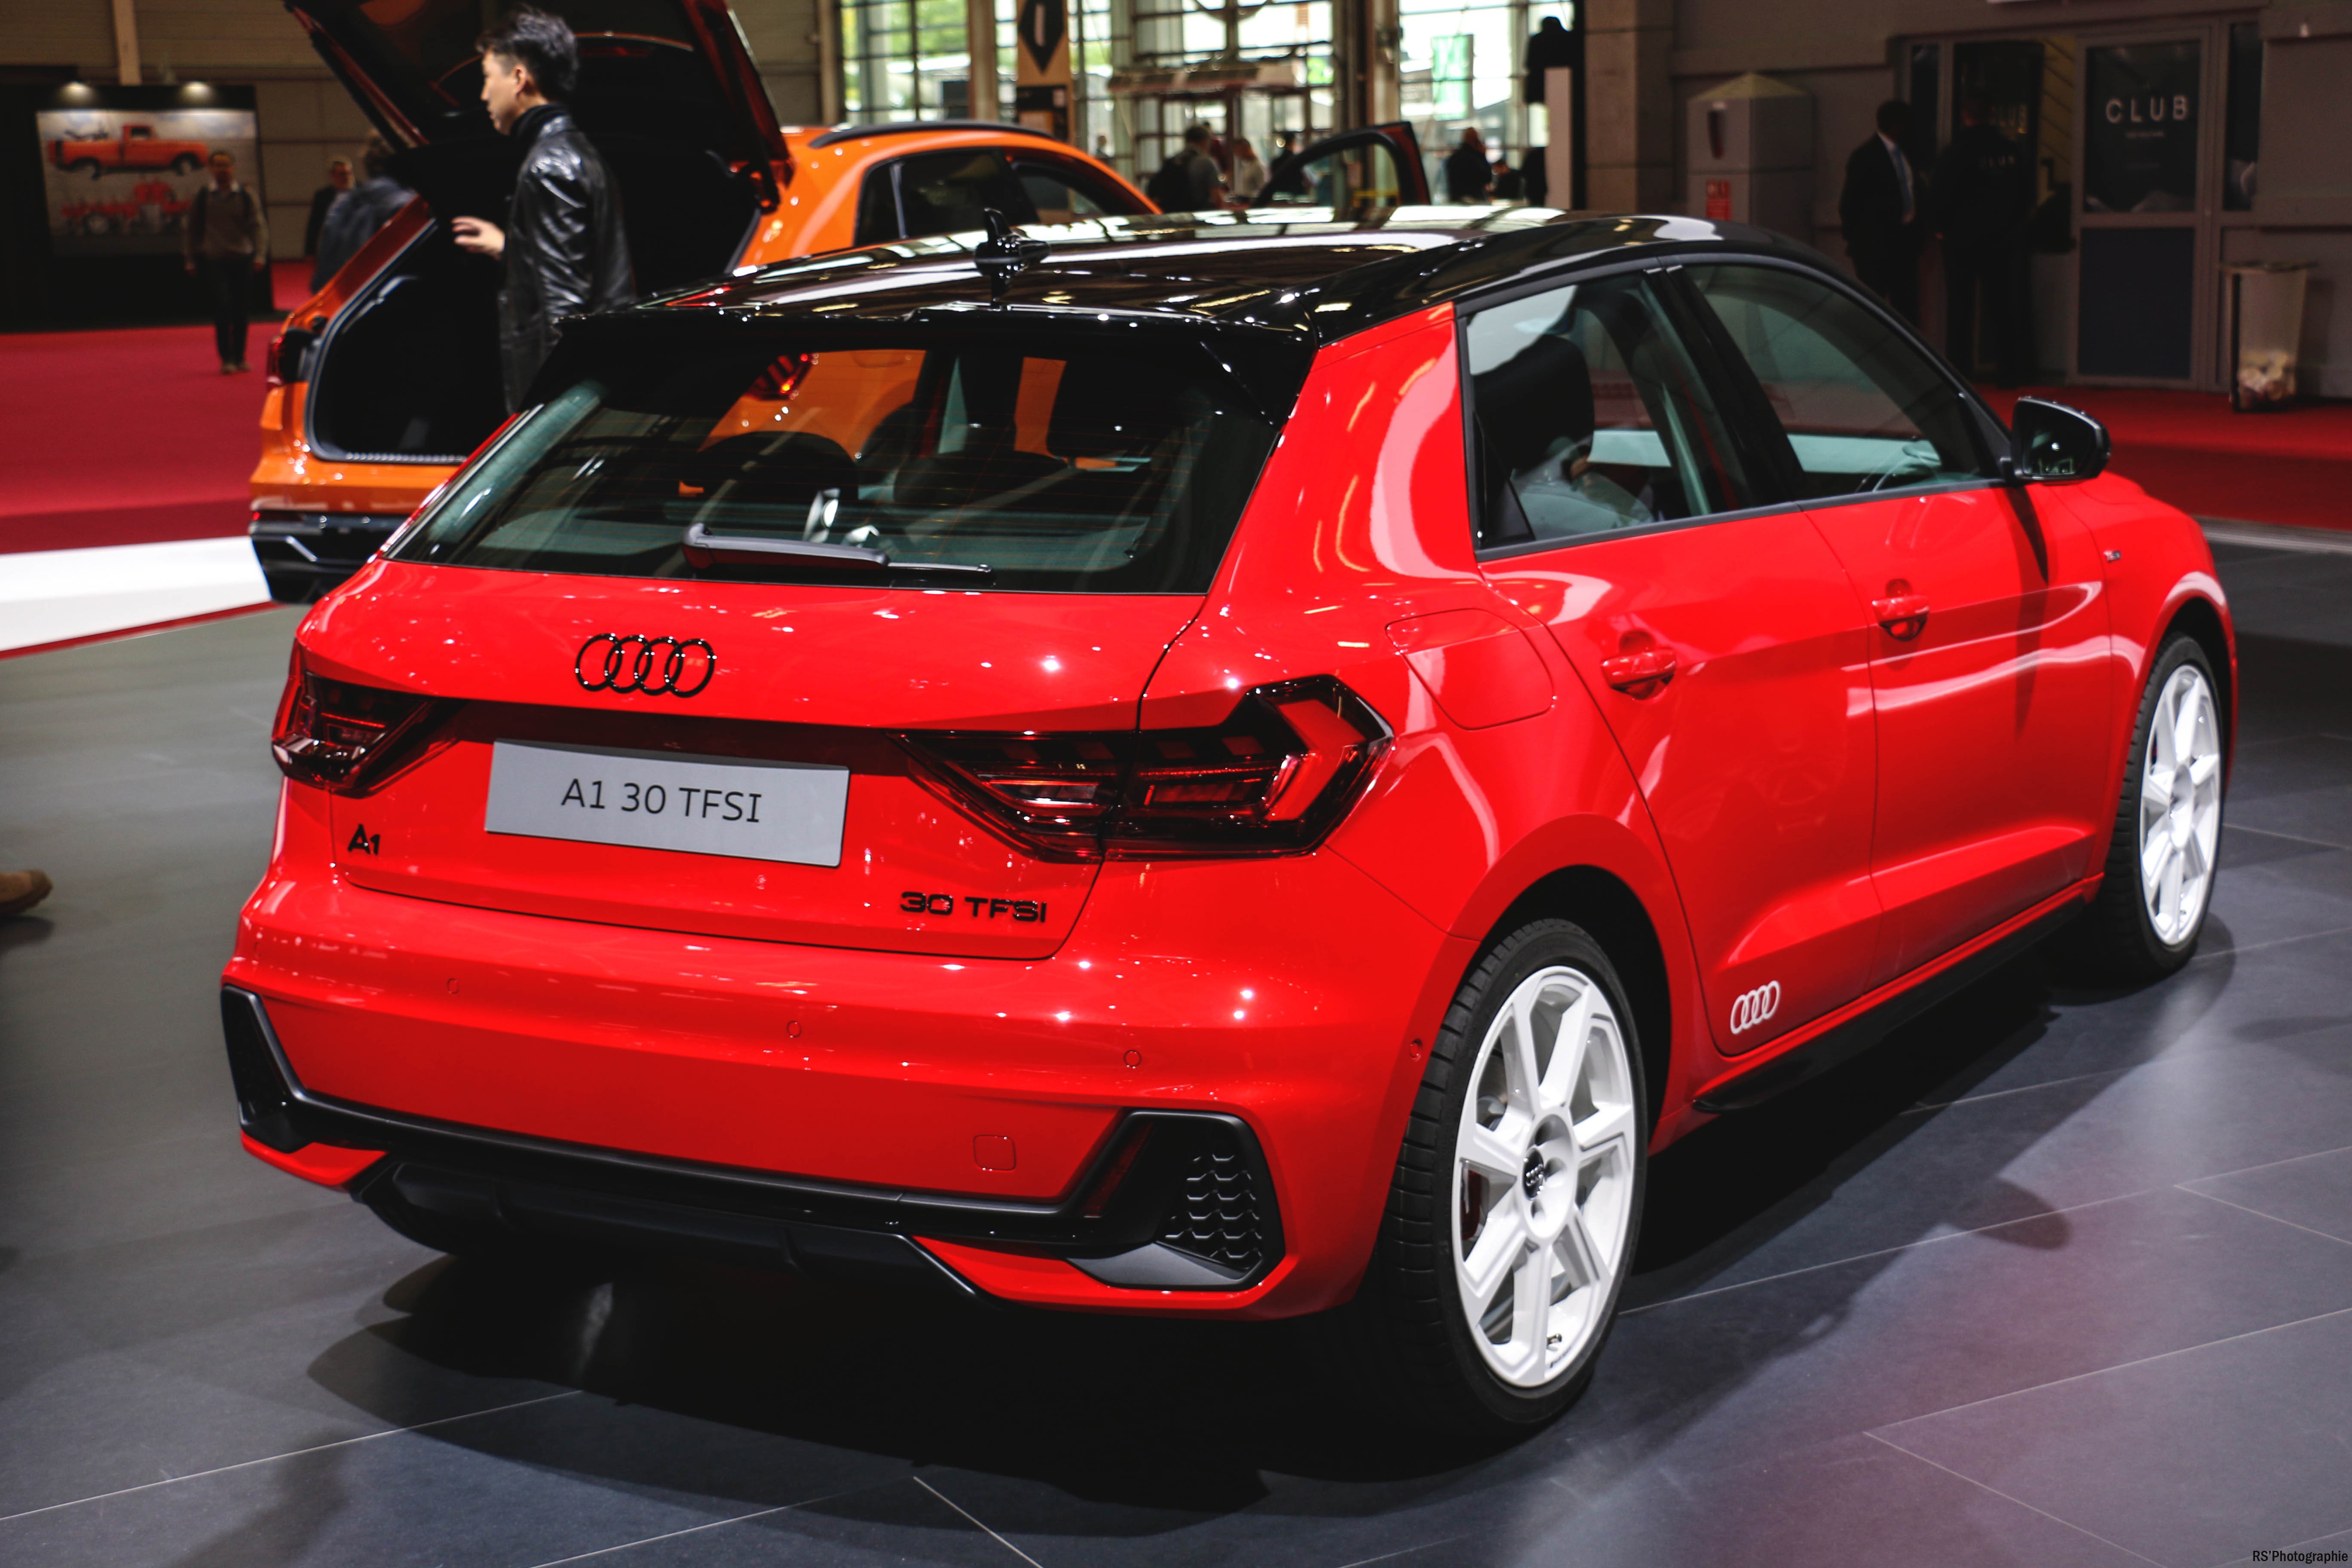 Audi A1 - rear - Paris Motor Show - 2018 - Mondial Auto - photo by Arnaud Demasier RS Photographie